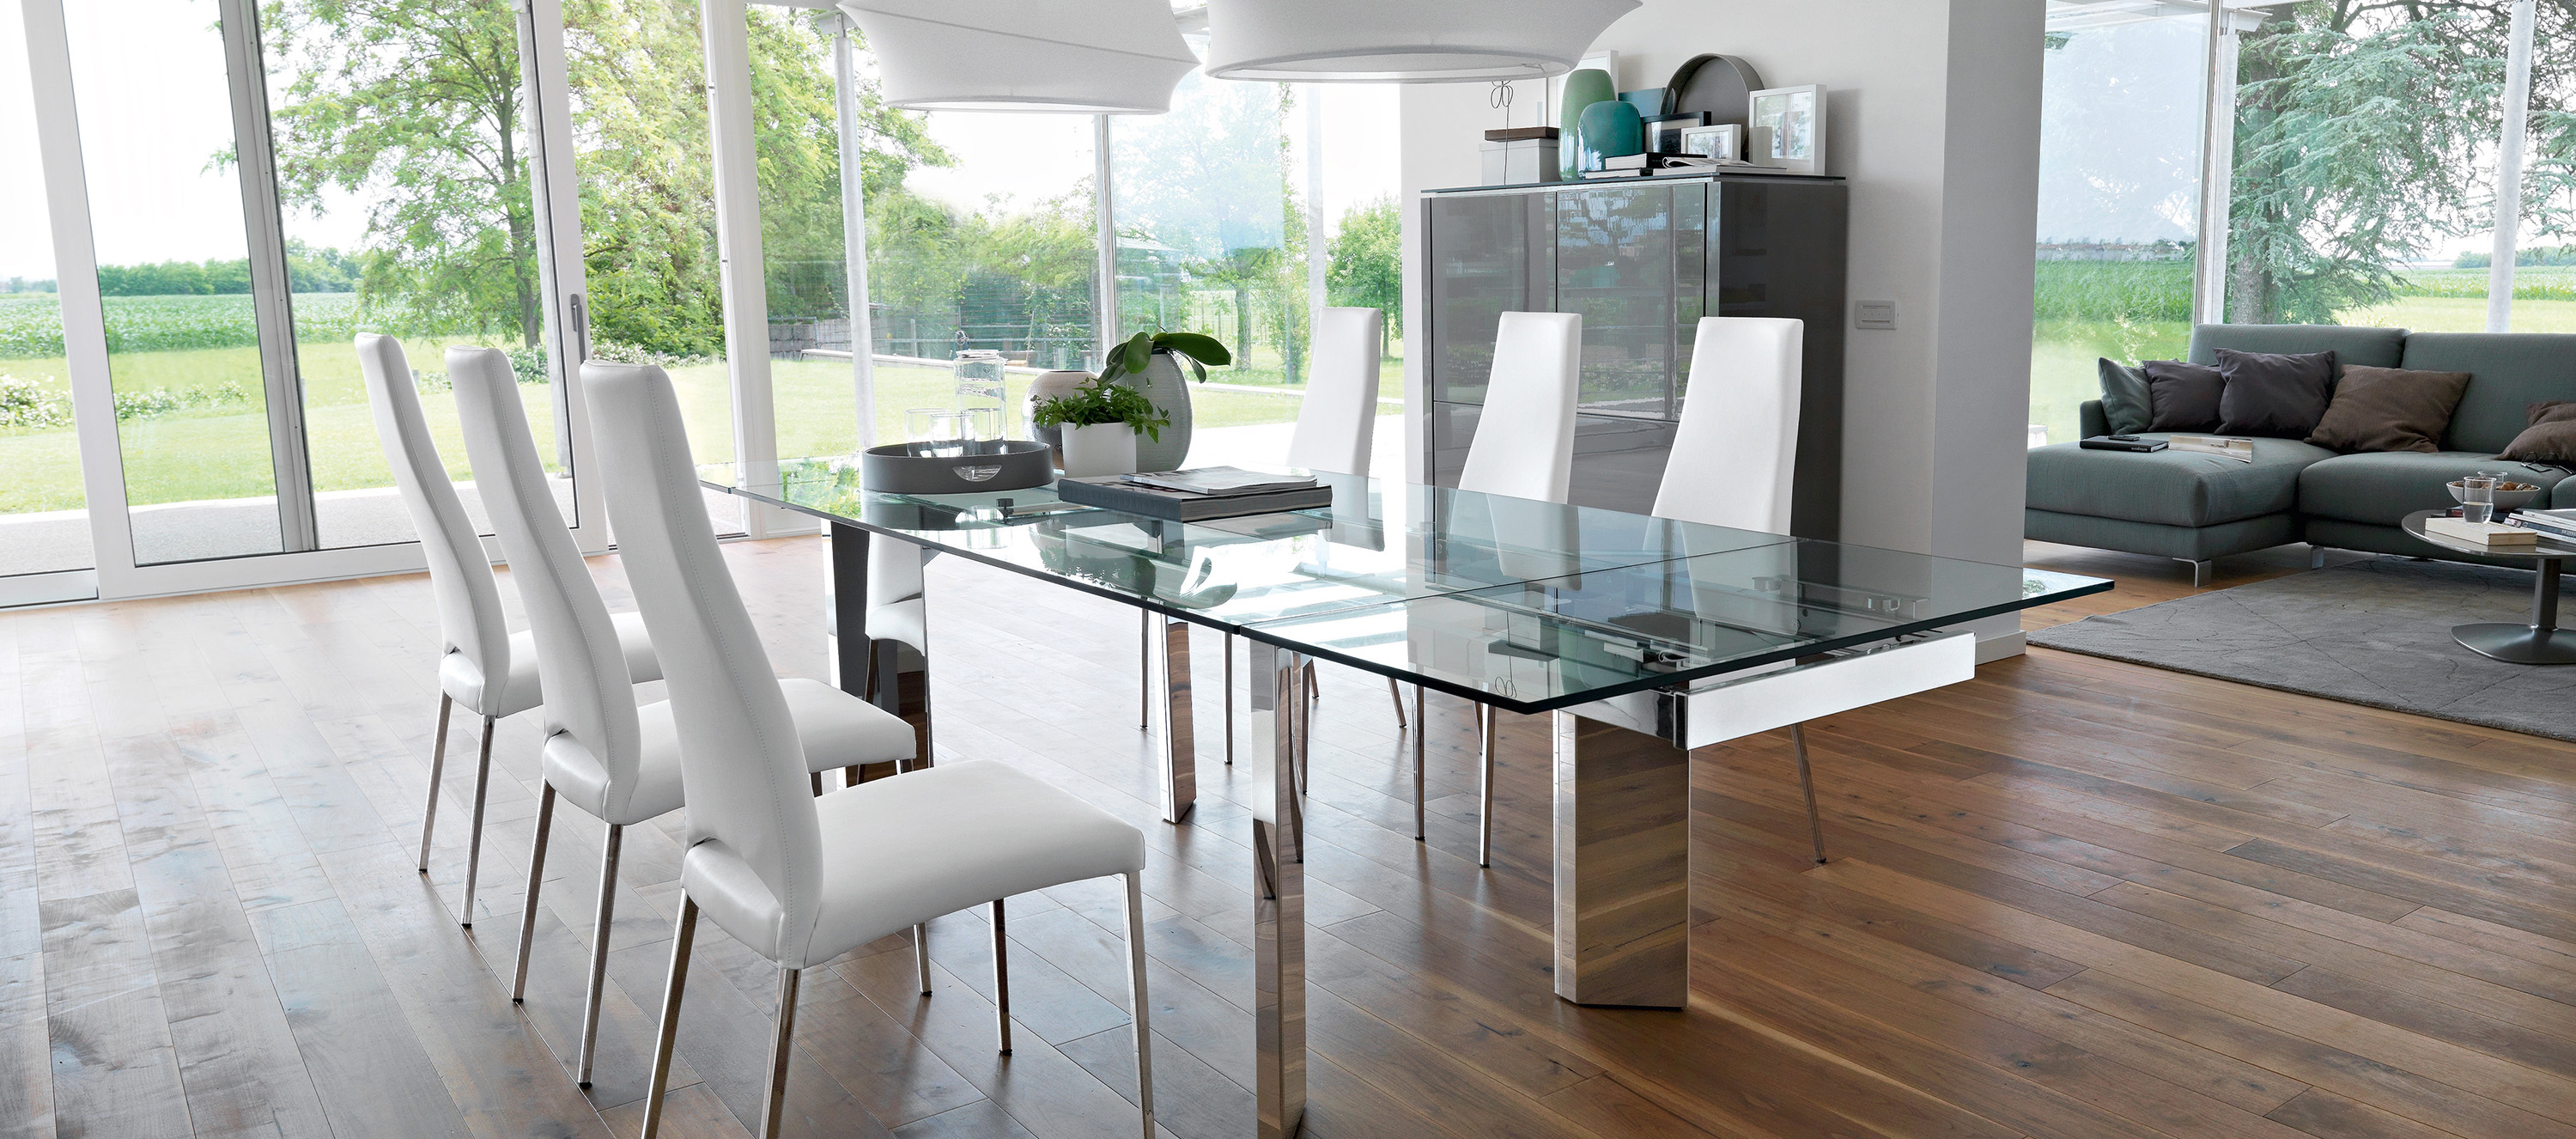 Calligaris tower modern extendable glass dining table for Soggiorno pranzo arredamento